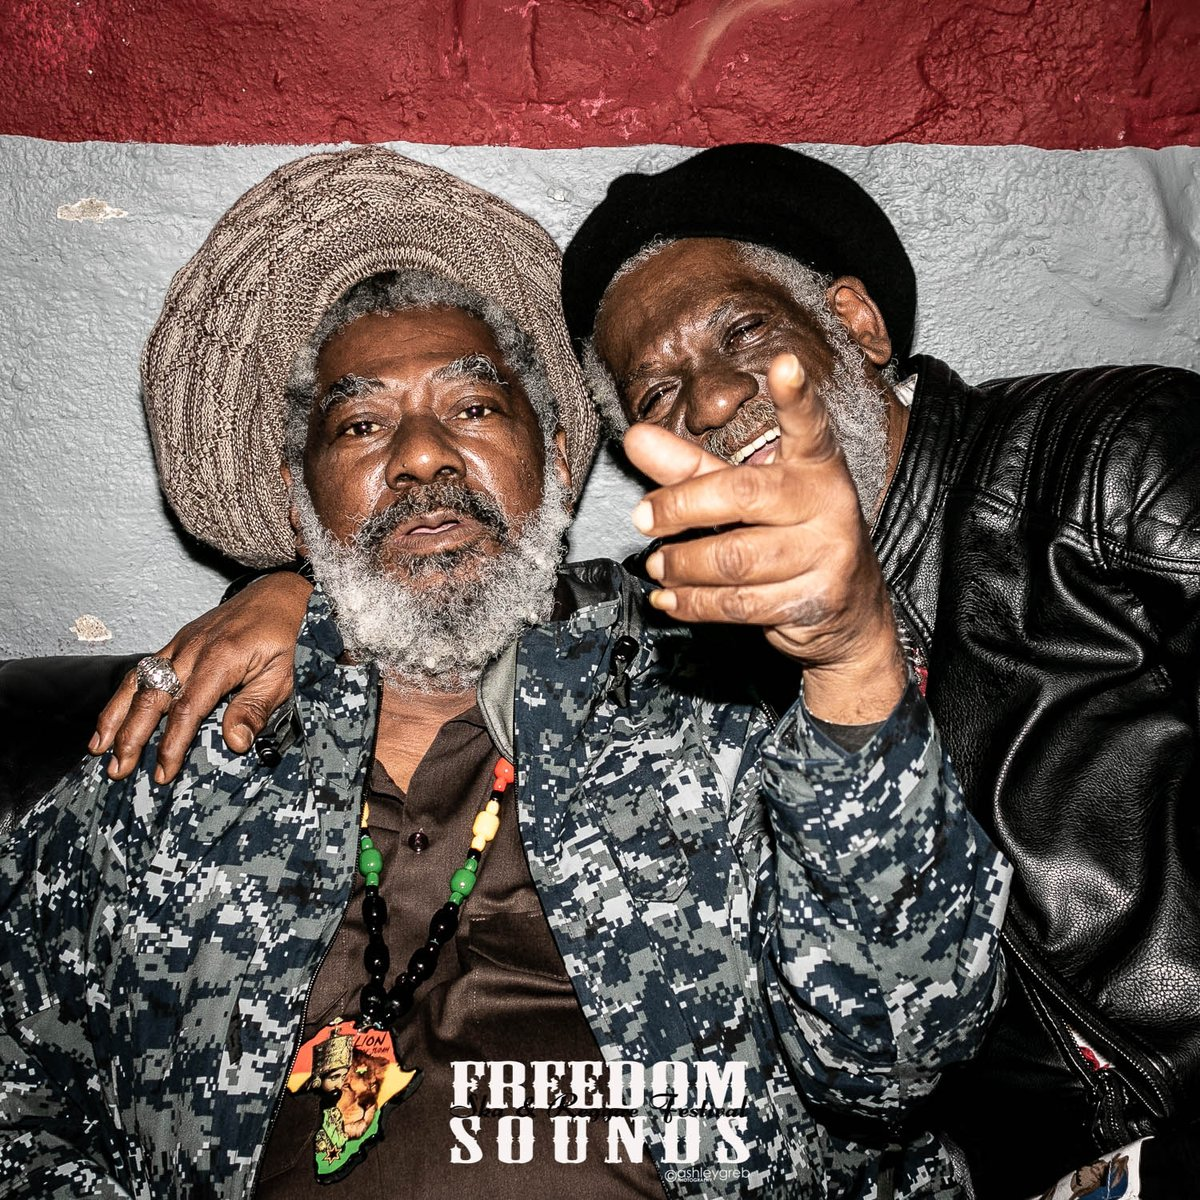 Easily one of my favourite shots from this year's wonderful @FreedomSounds Festival, humbly backstage with the incredible #reggae legends Johnny Clarke and Winston McAnuff.